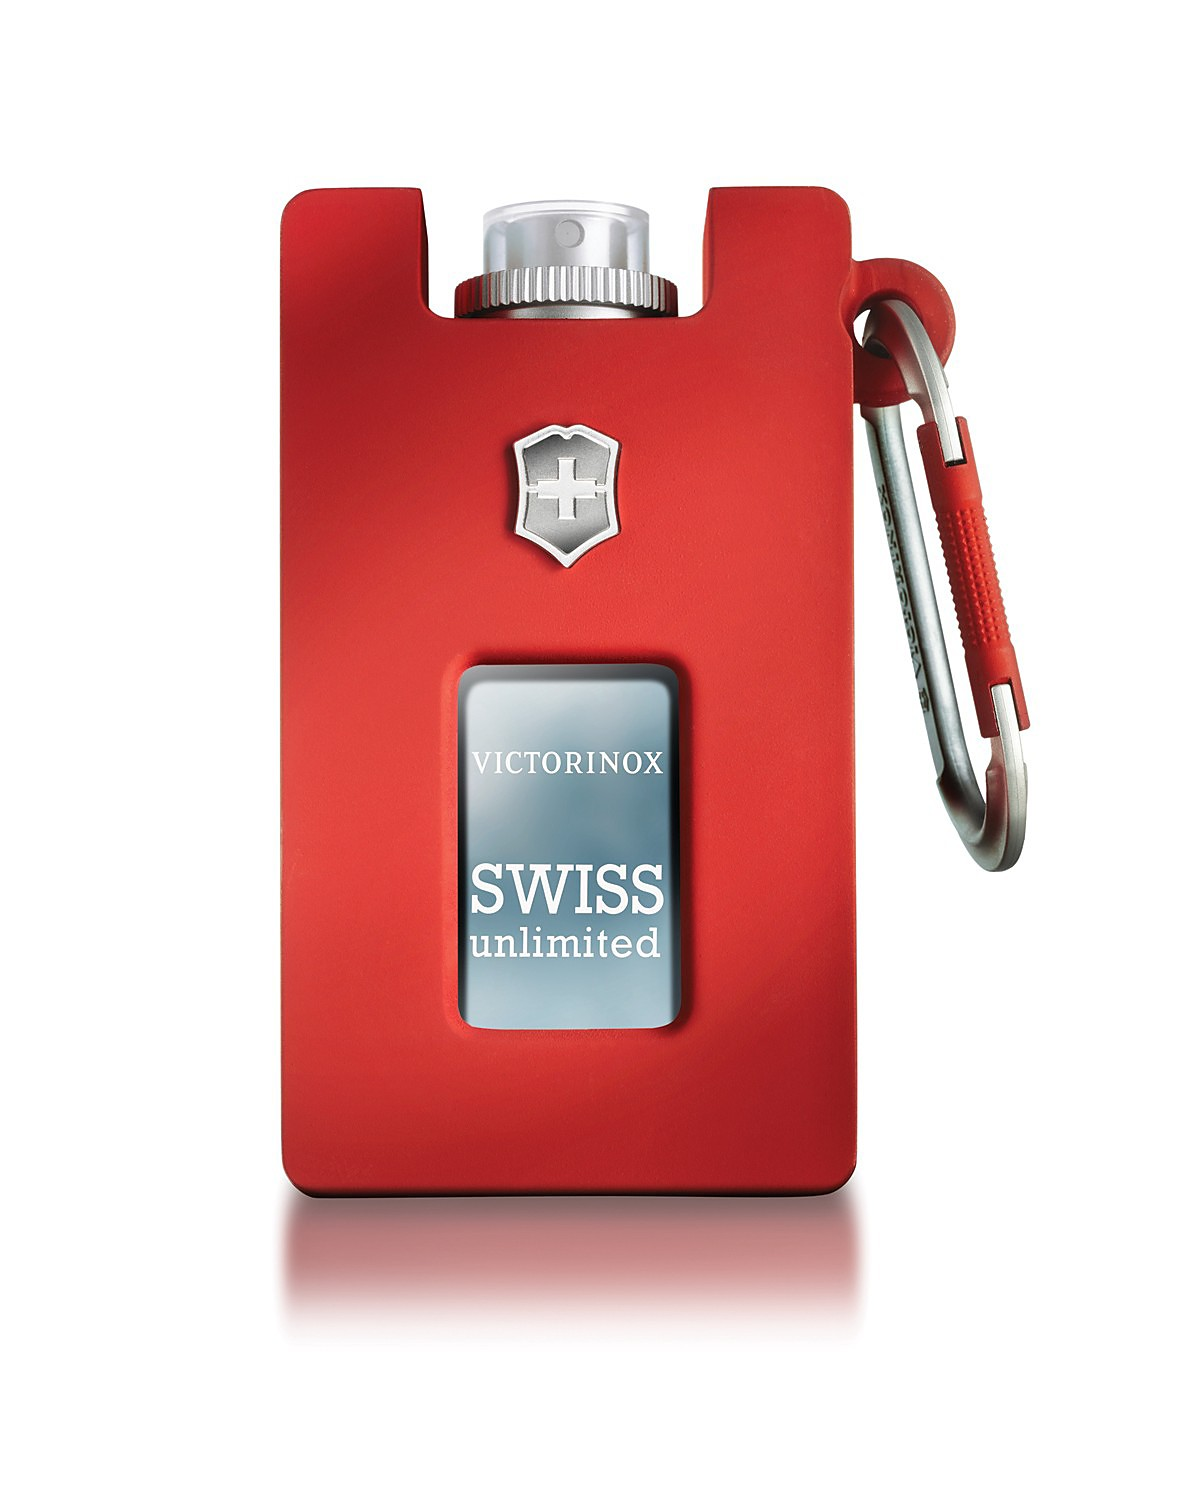 Borracha reveste o frasco de Swiss Unlimited, da Victorinox